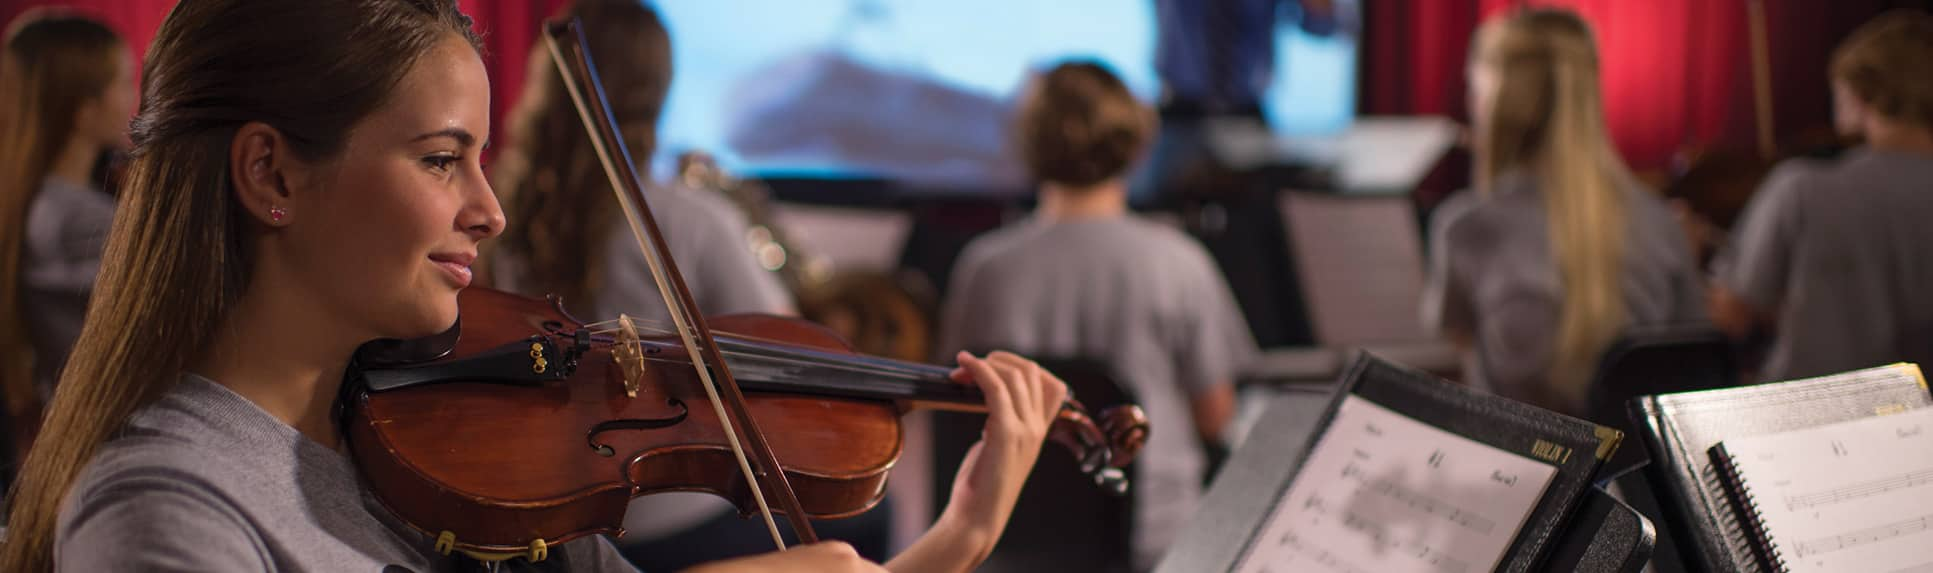 A young girl playing the violin in a room of other musicians led by a conductor